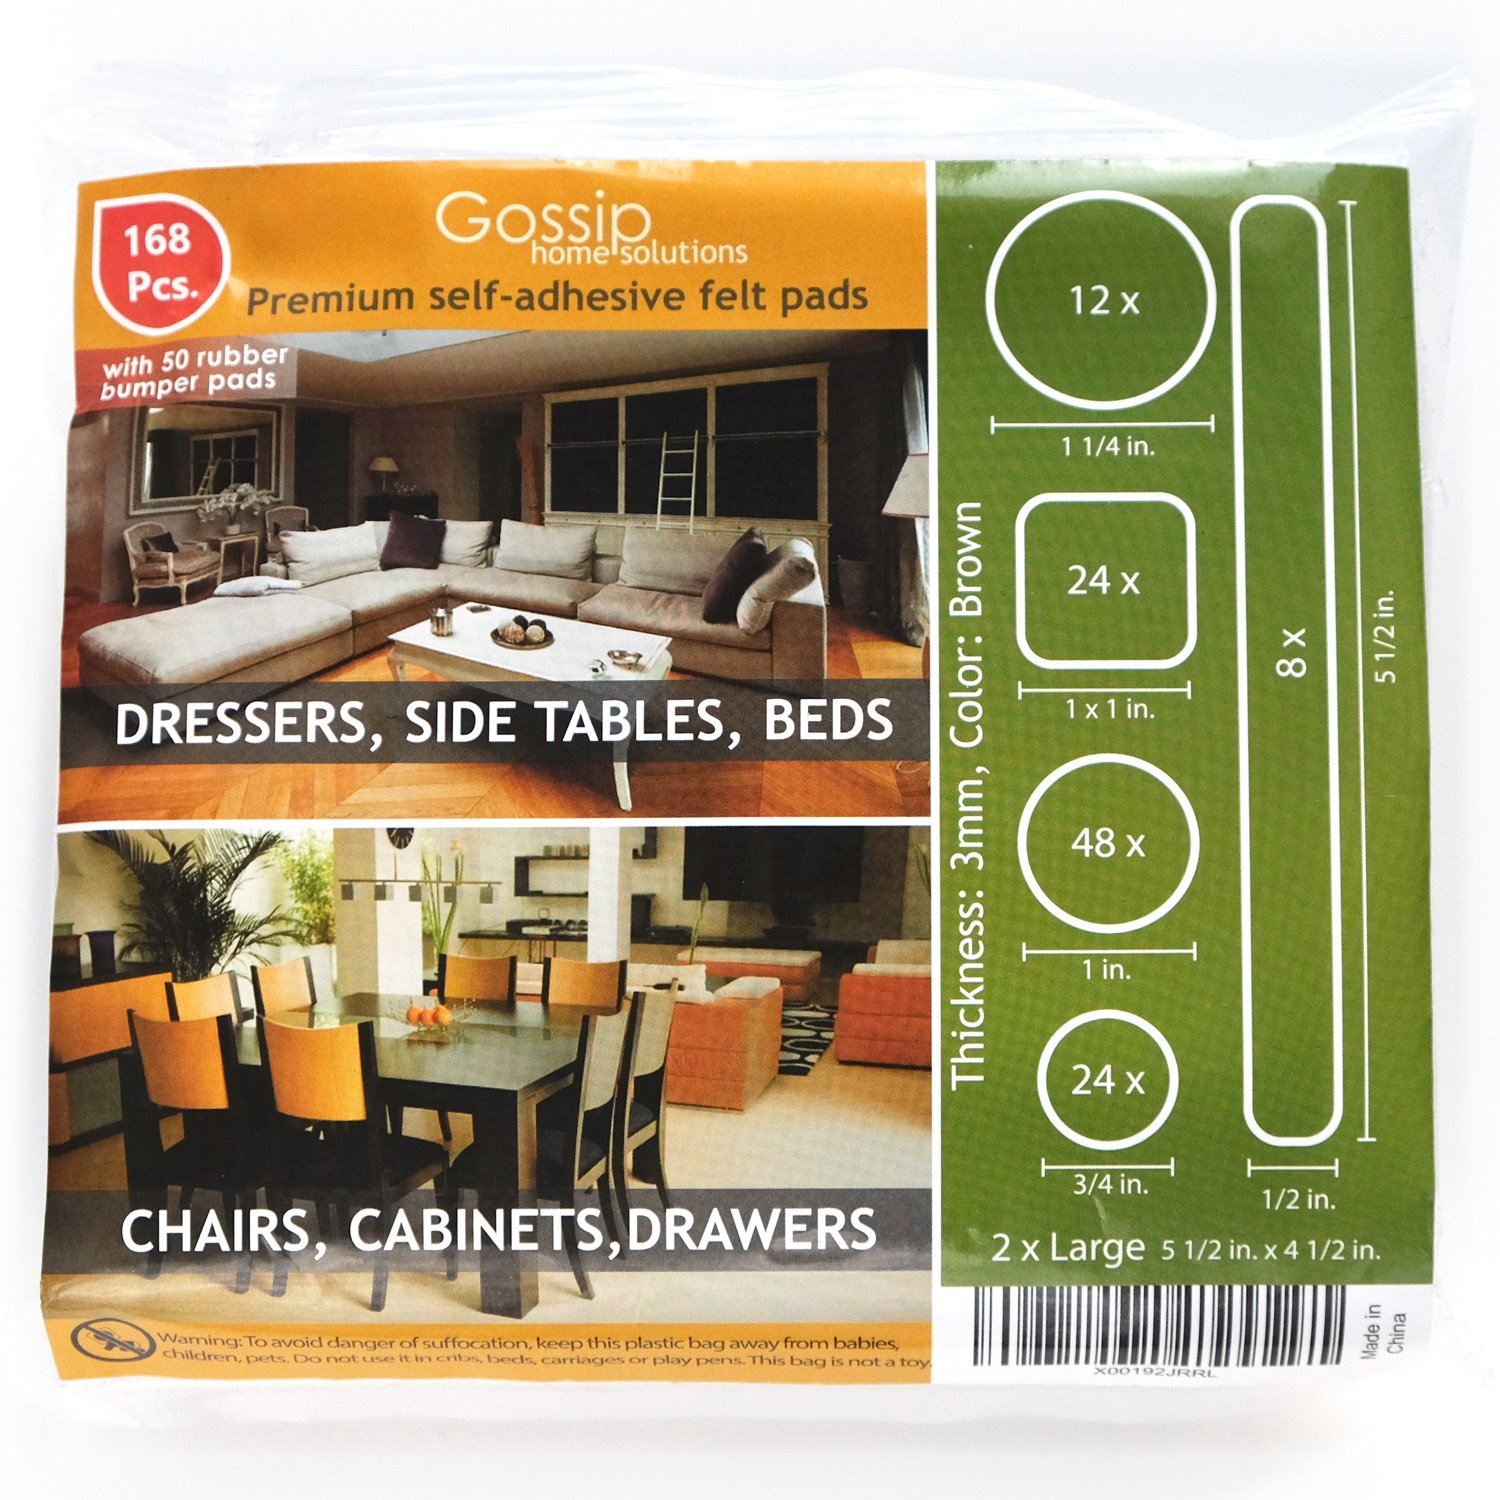 PREMIUM Furniture Pads Set 168 Pcs Value Pack Brown - Heavy Duty Adhesive Felt Pads for Furniture Feet, Assorted Sizes with Noise Dampening Rubber Bumpers. Floor Protectors for Hardwood & Laminate by Gossip (Image #3)